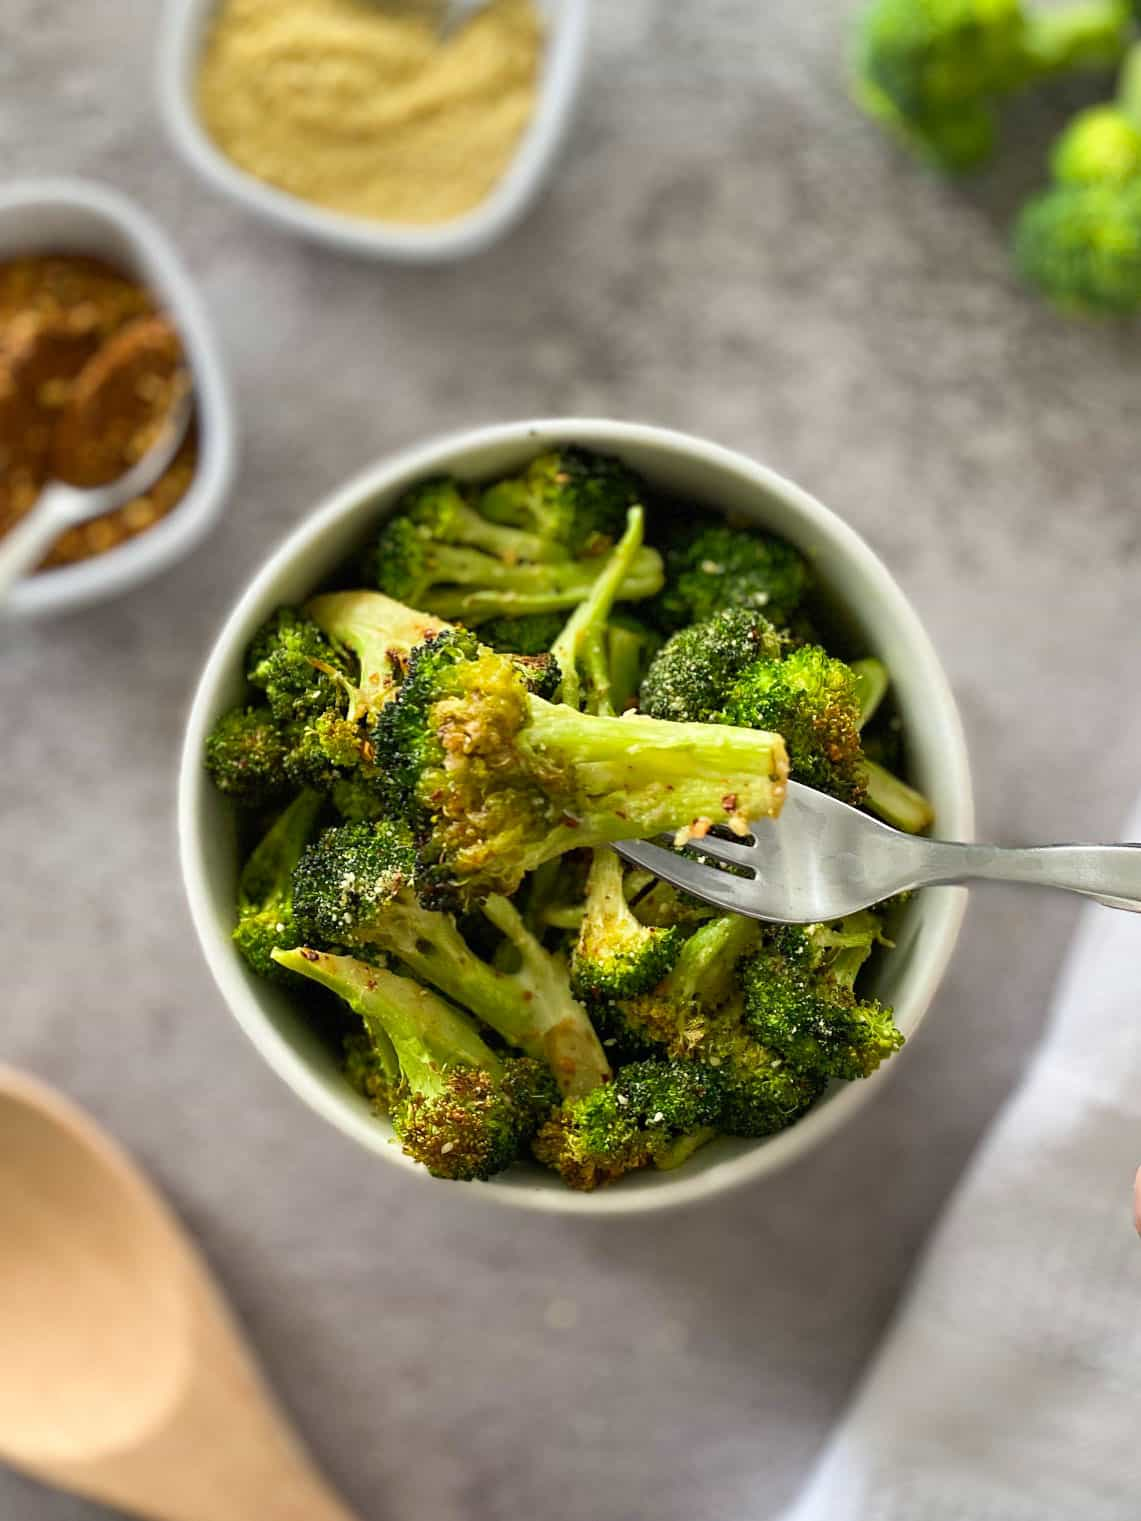 Fork holding up a broccoli floret over a bowl of more broccoli.